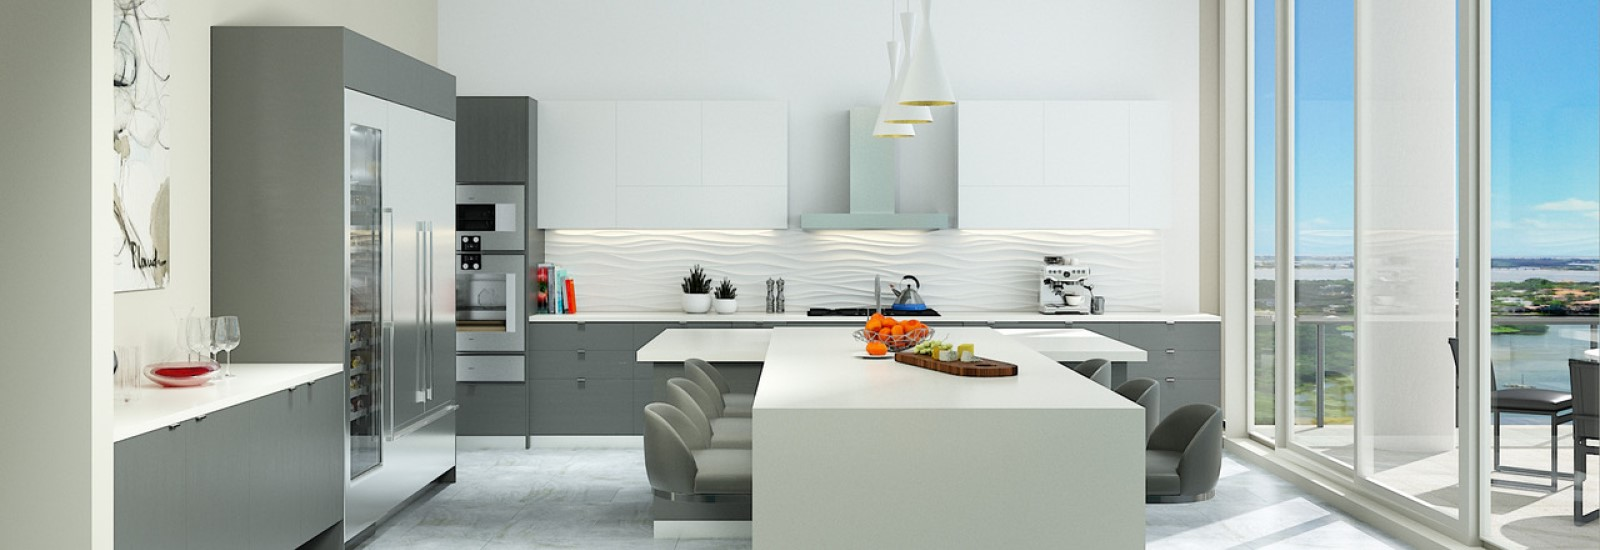 Kitchen w partial view Estate_slideshow.jpg